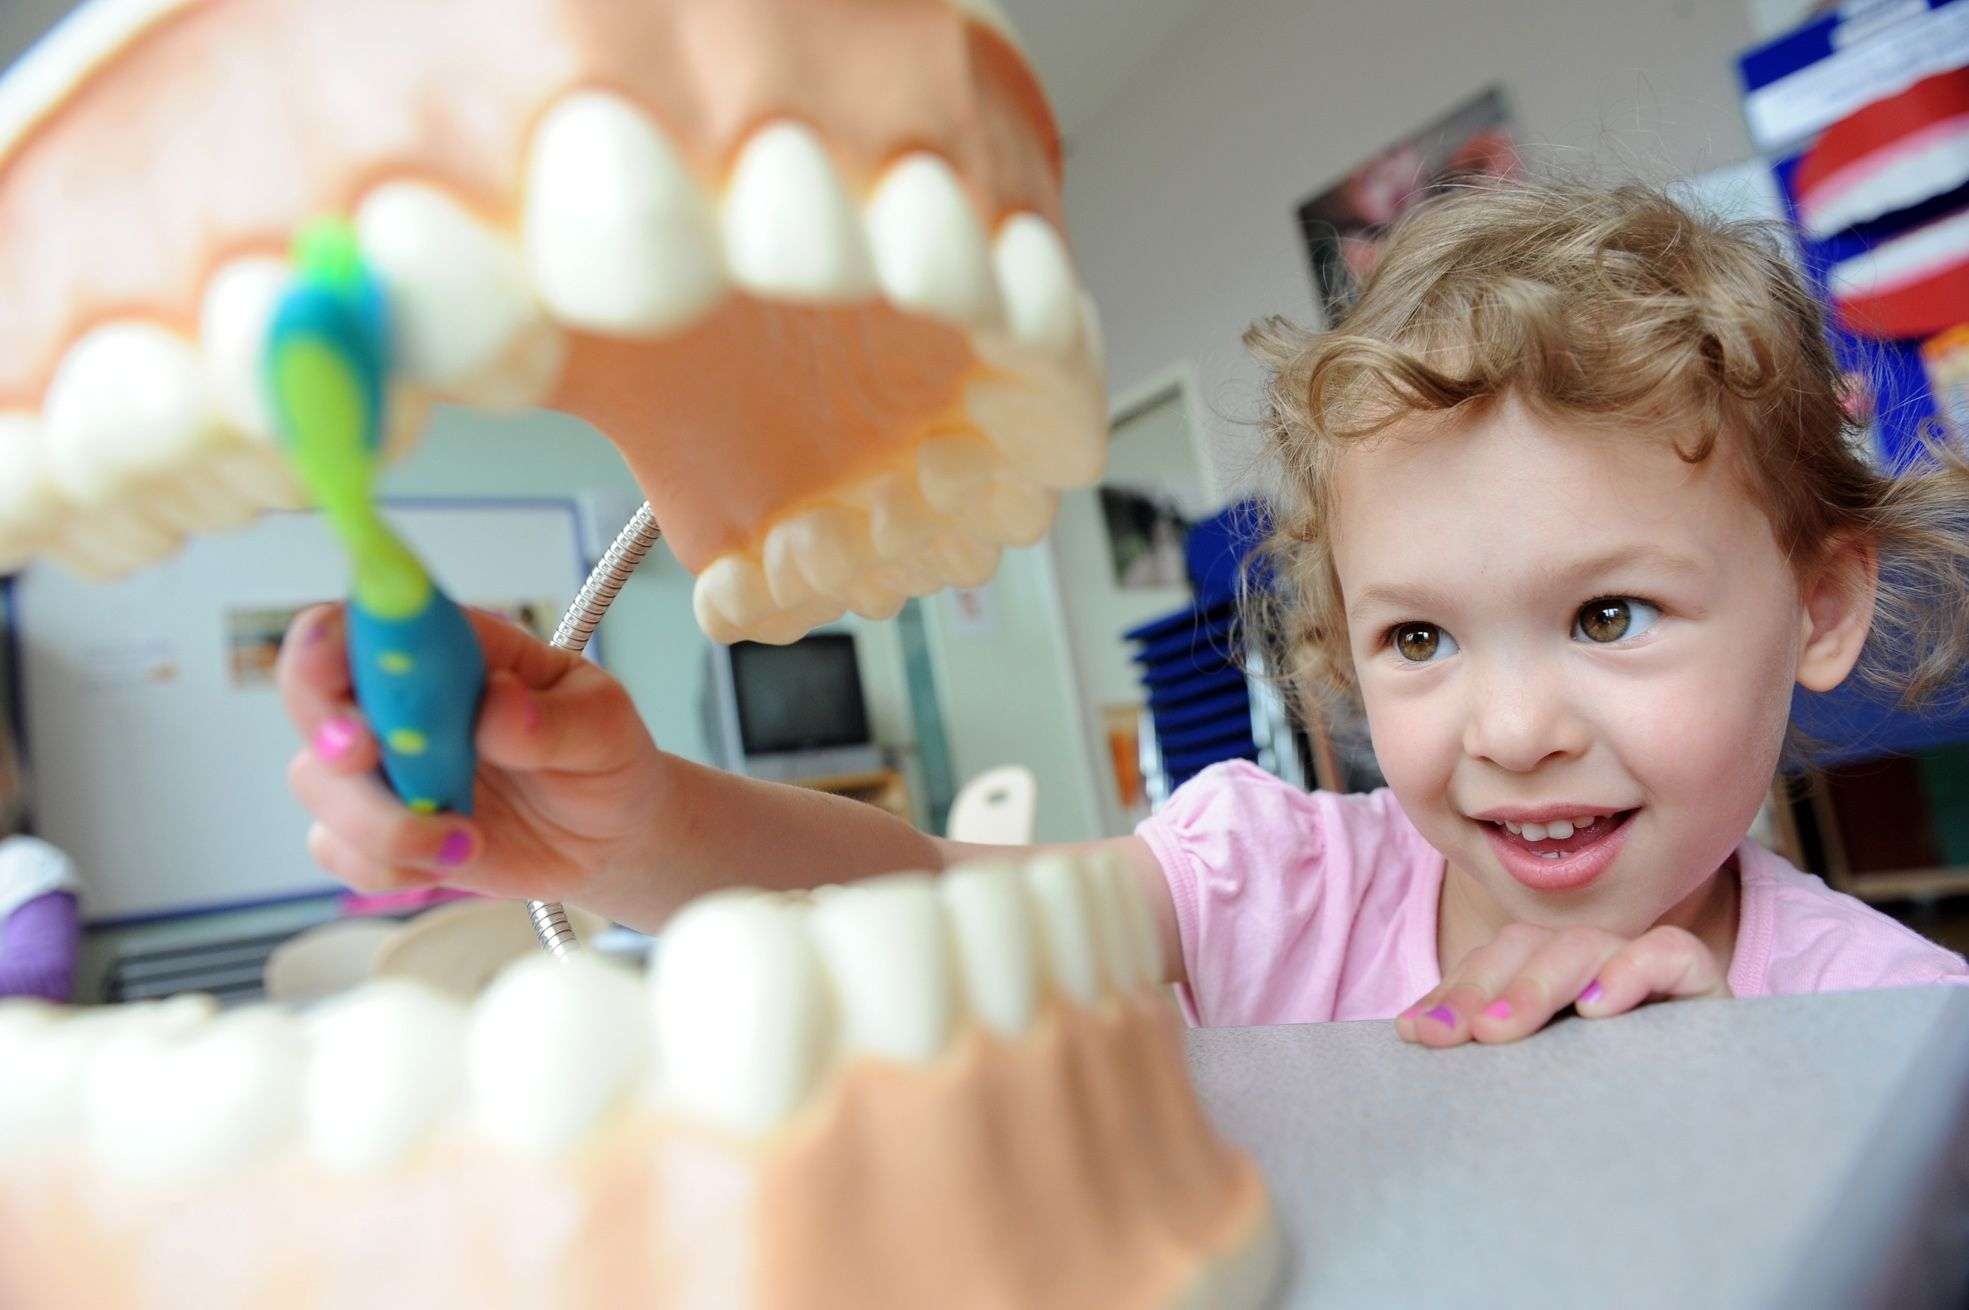 Educating kids about their teeth and how to take care of